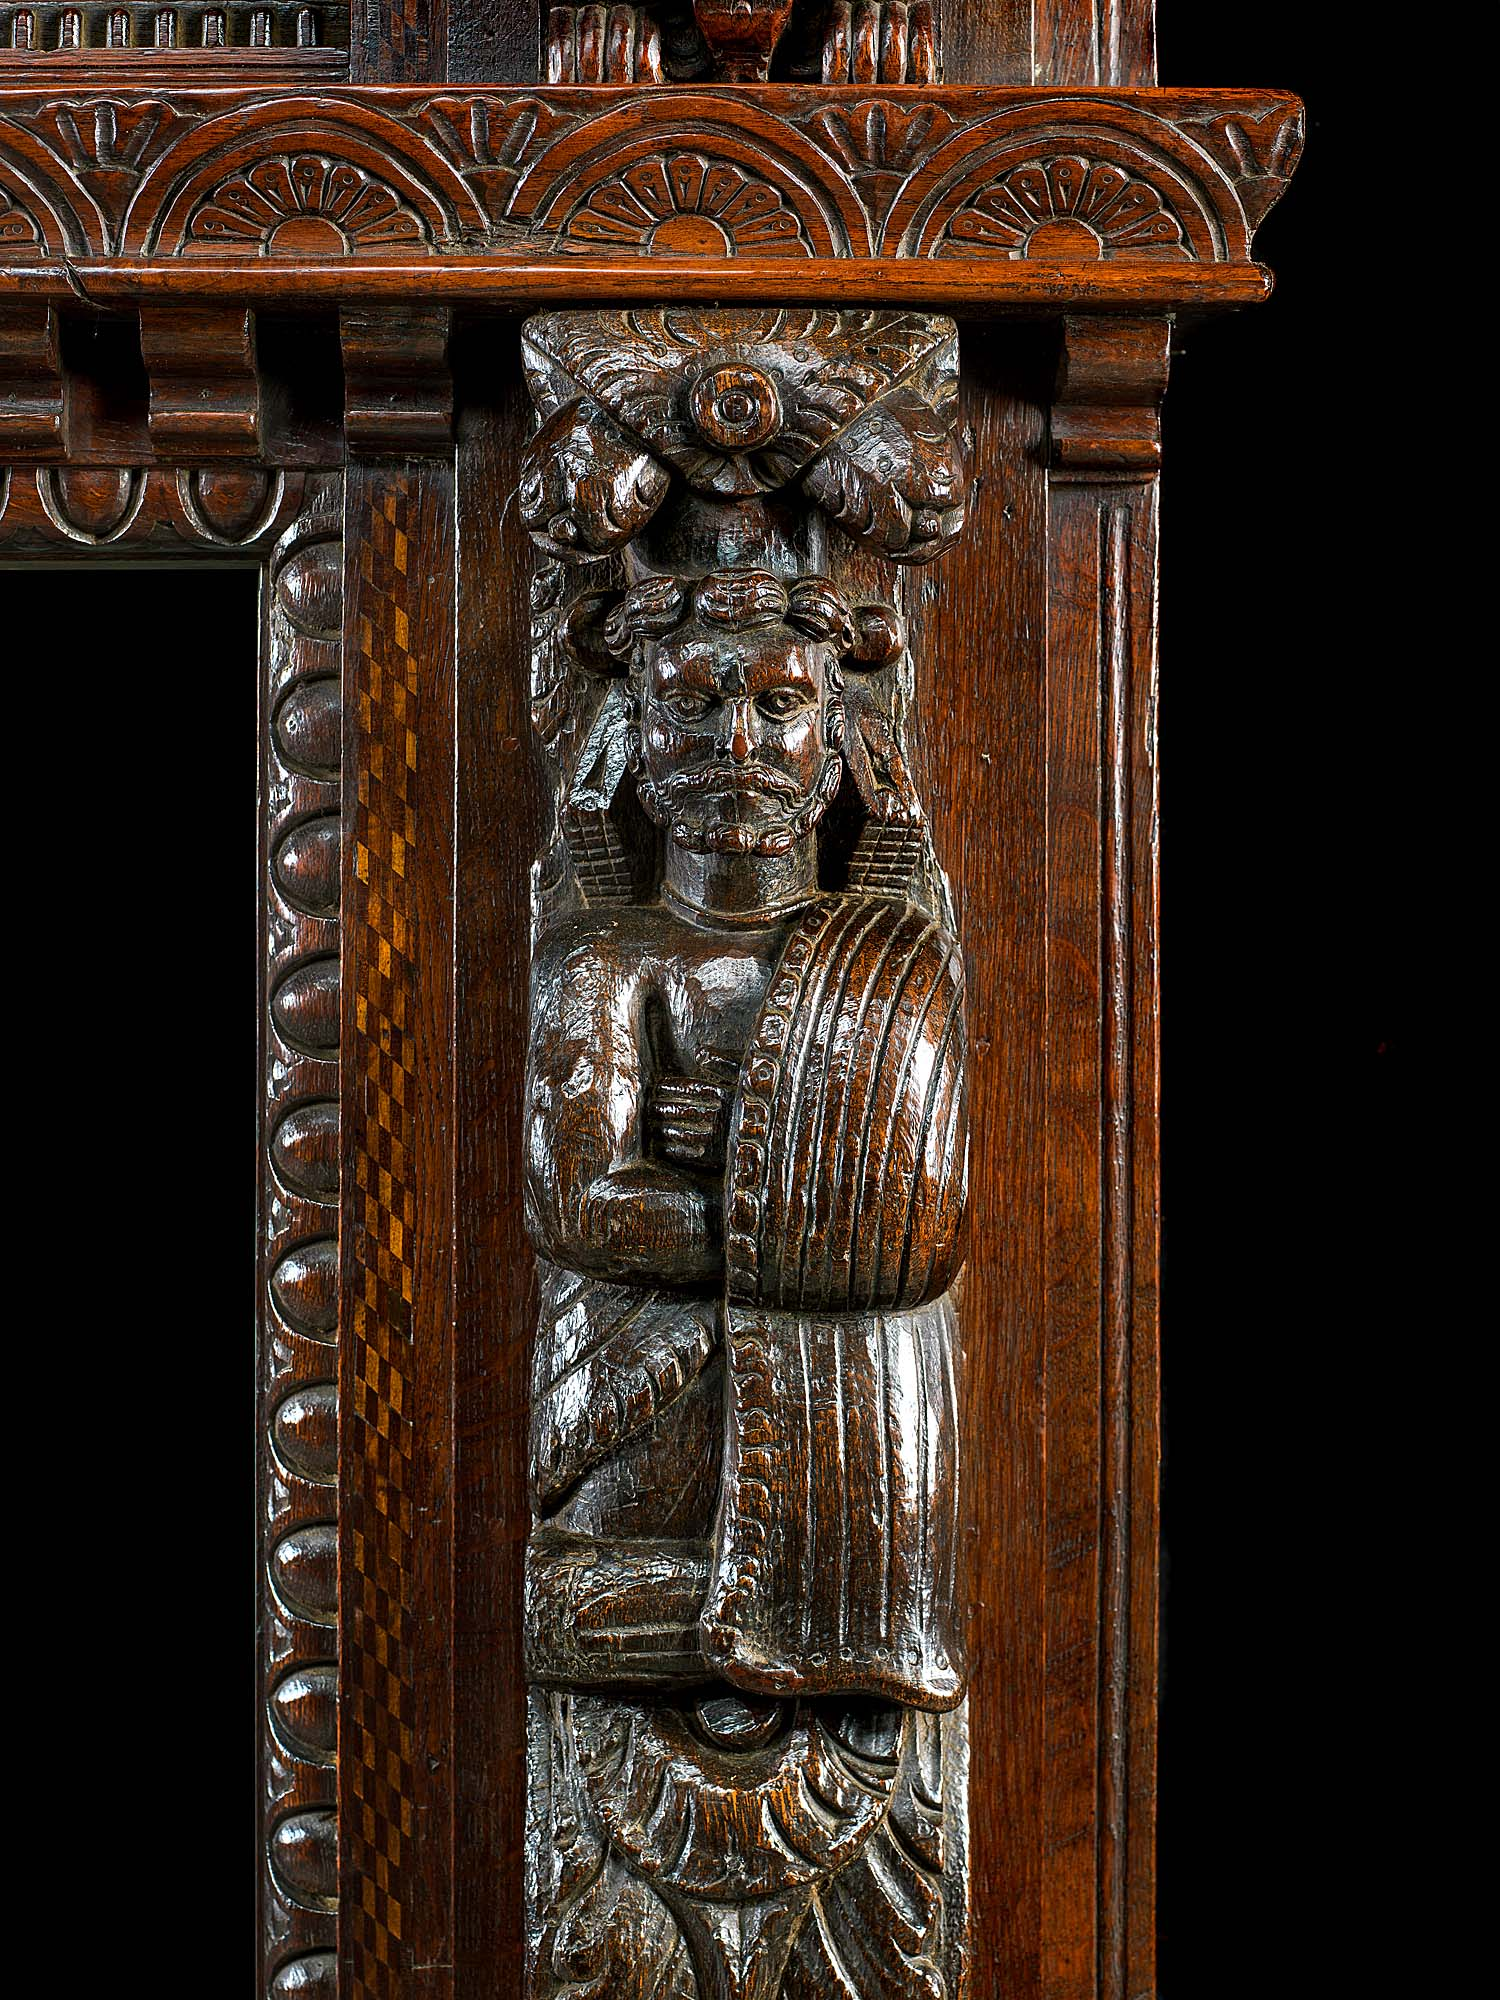 A substantial deeply carved oak Jacobean style antique fireplace